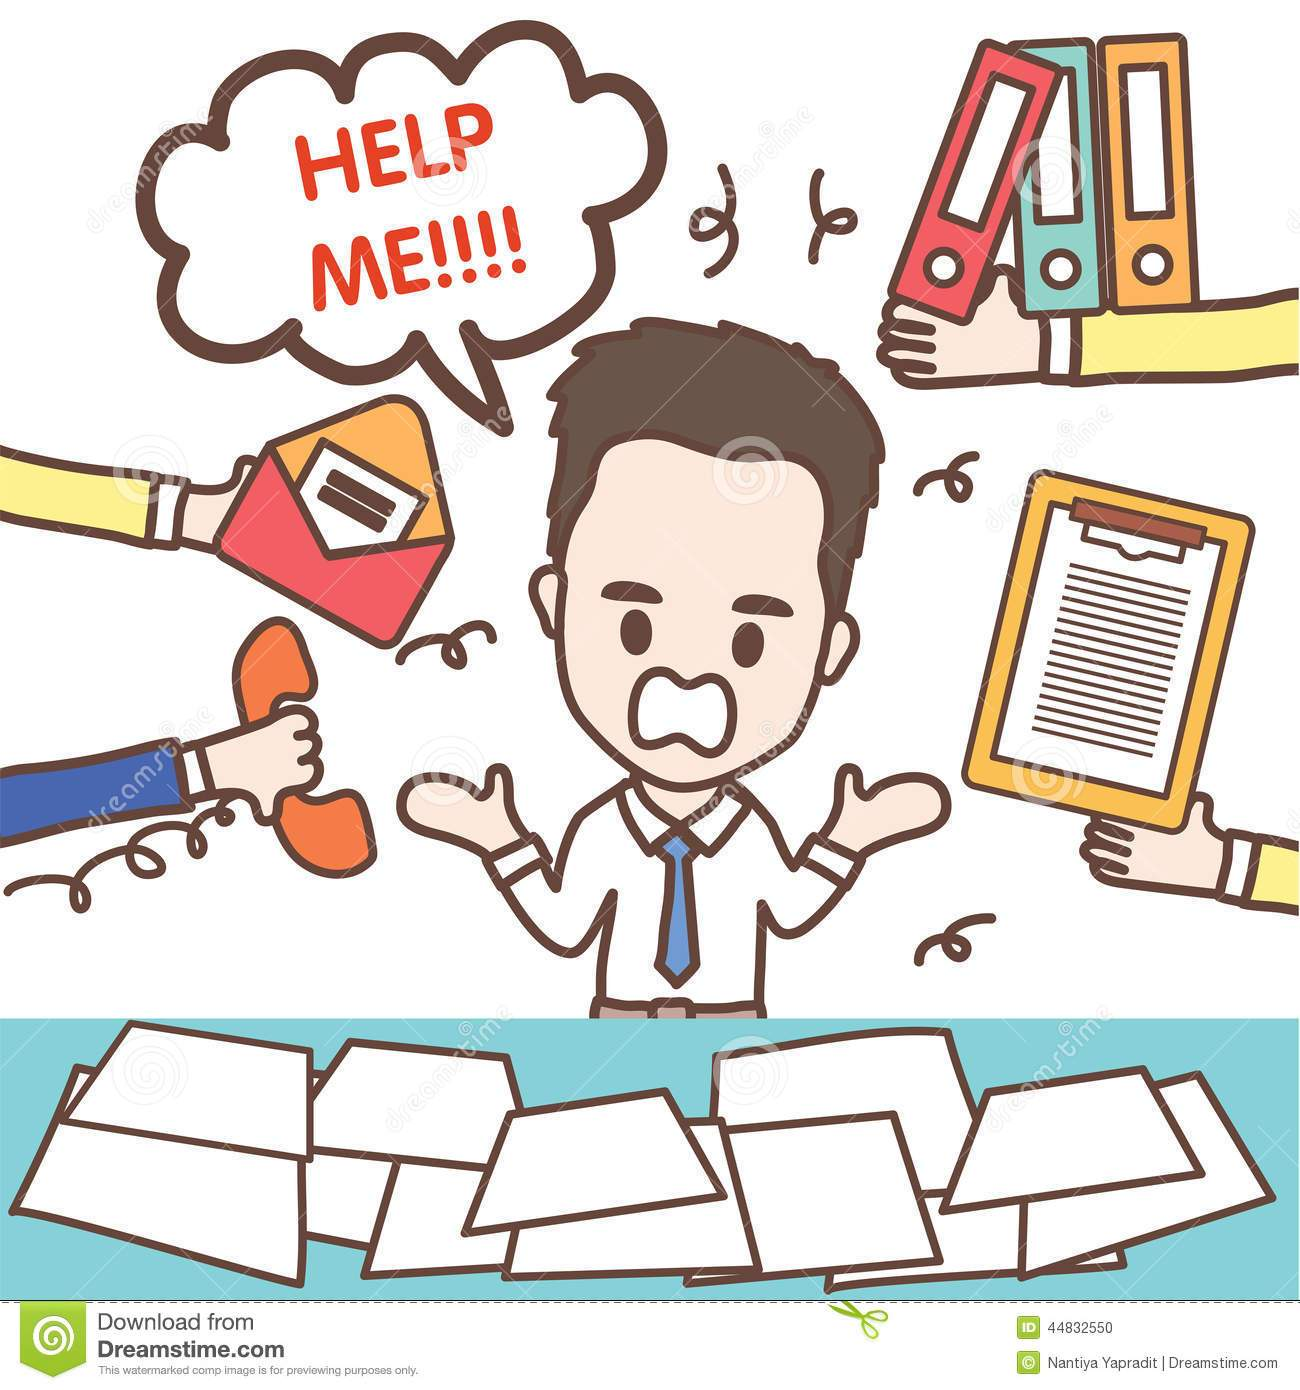 Busy office worker clipart 5 » Clipart Portal.